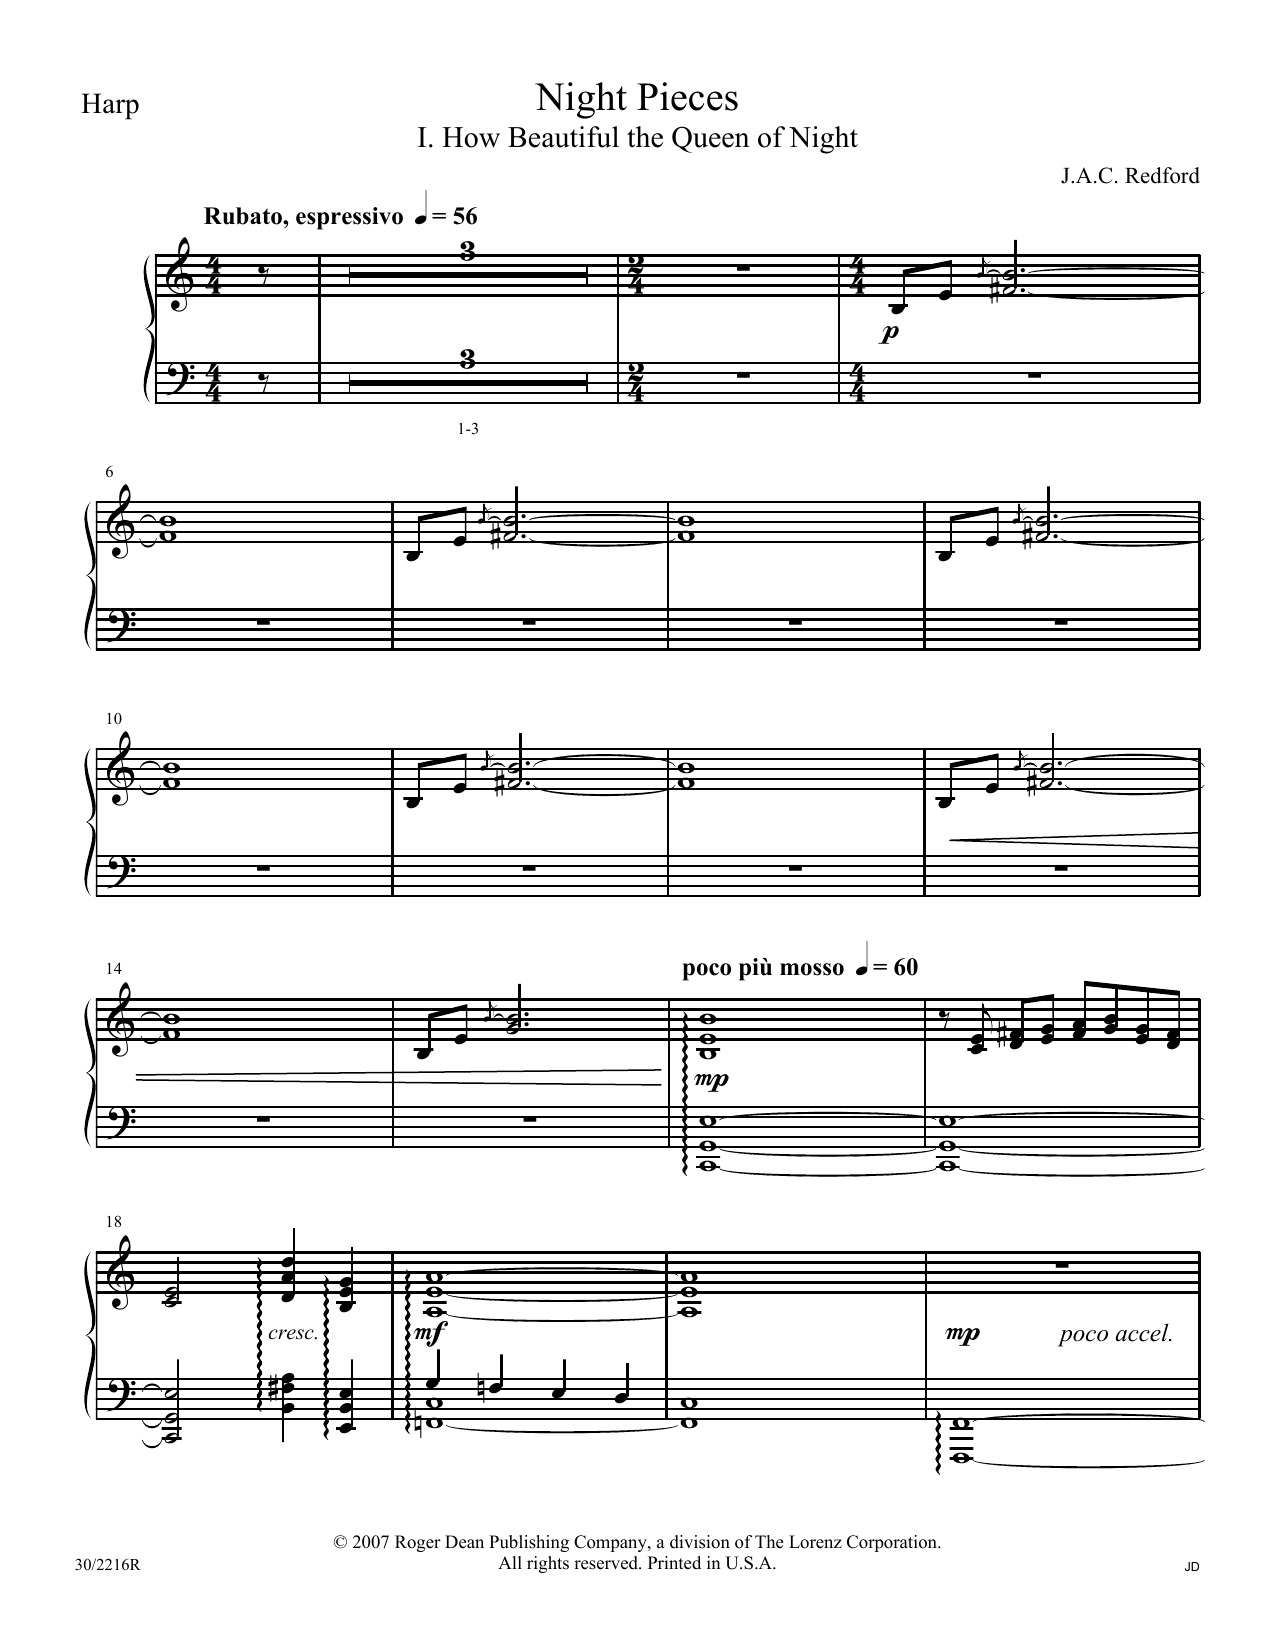 J.A.C. Redford Night Pieces - Harp sheet music notes and chords. Download Printable PDF.